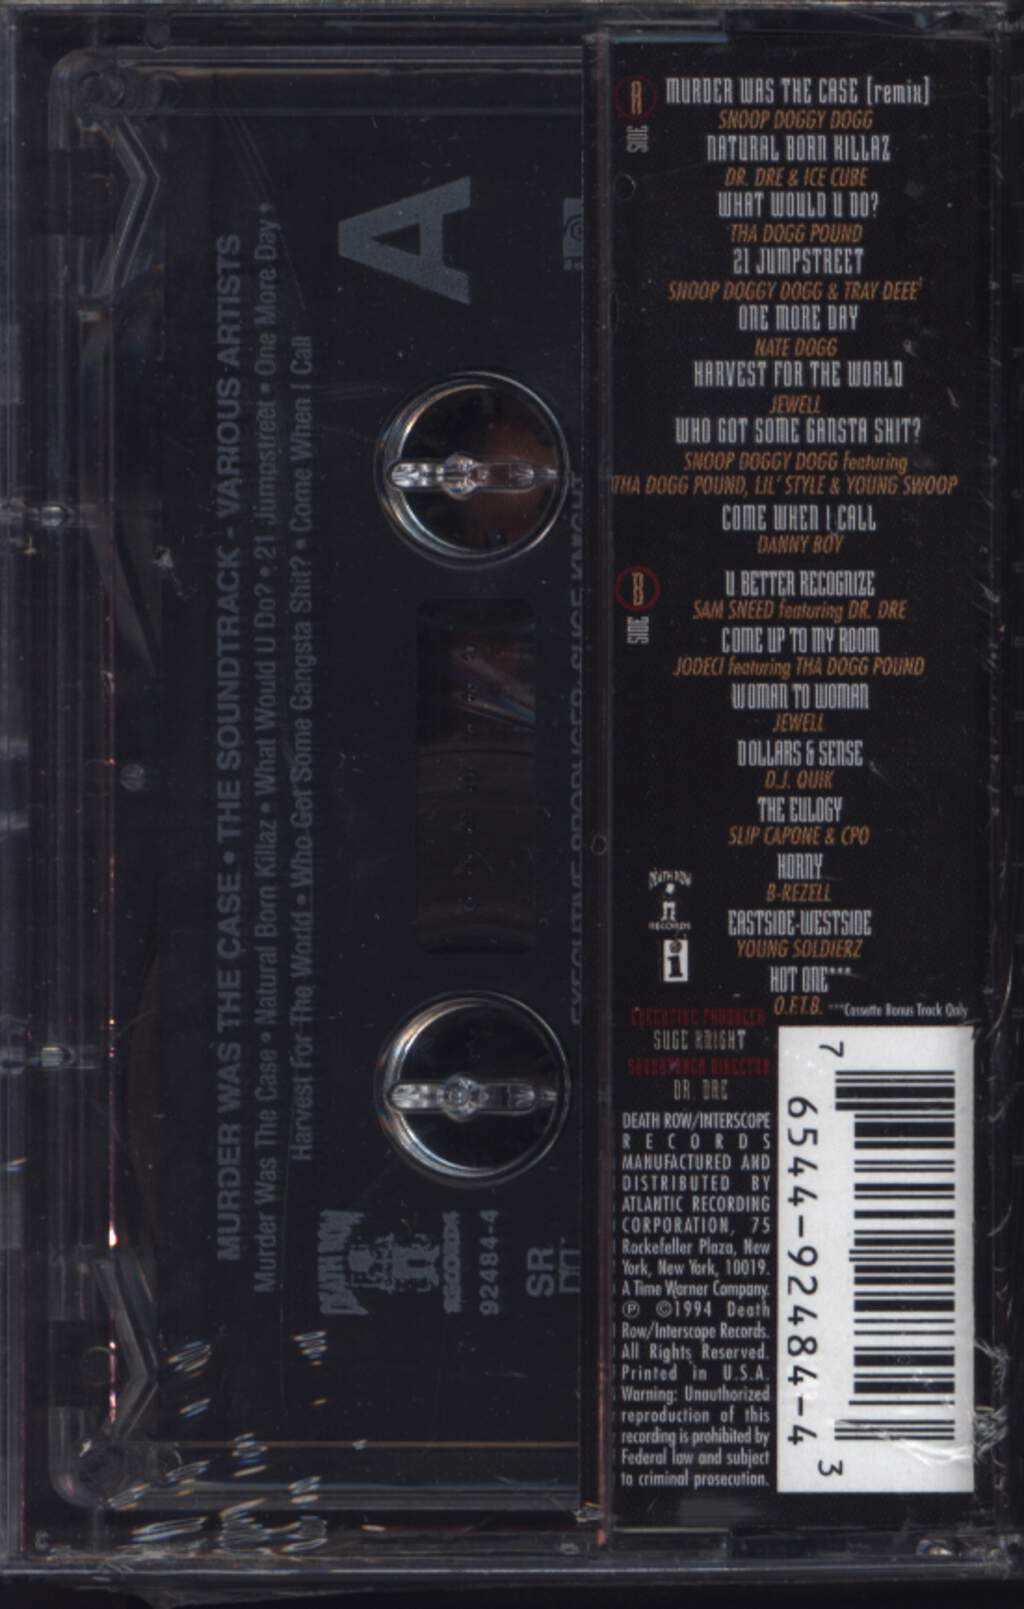 Various: Murder Was The Case (The Soundtrack), Compact Cassette